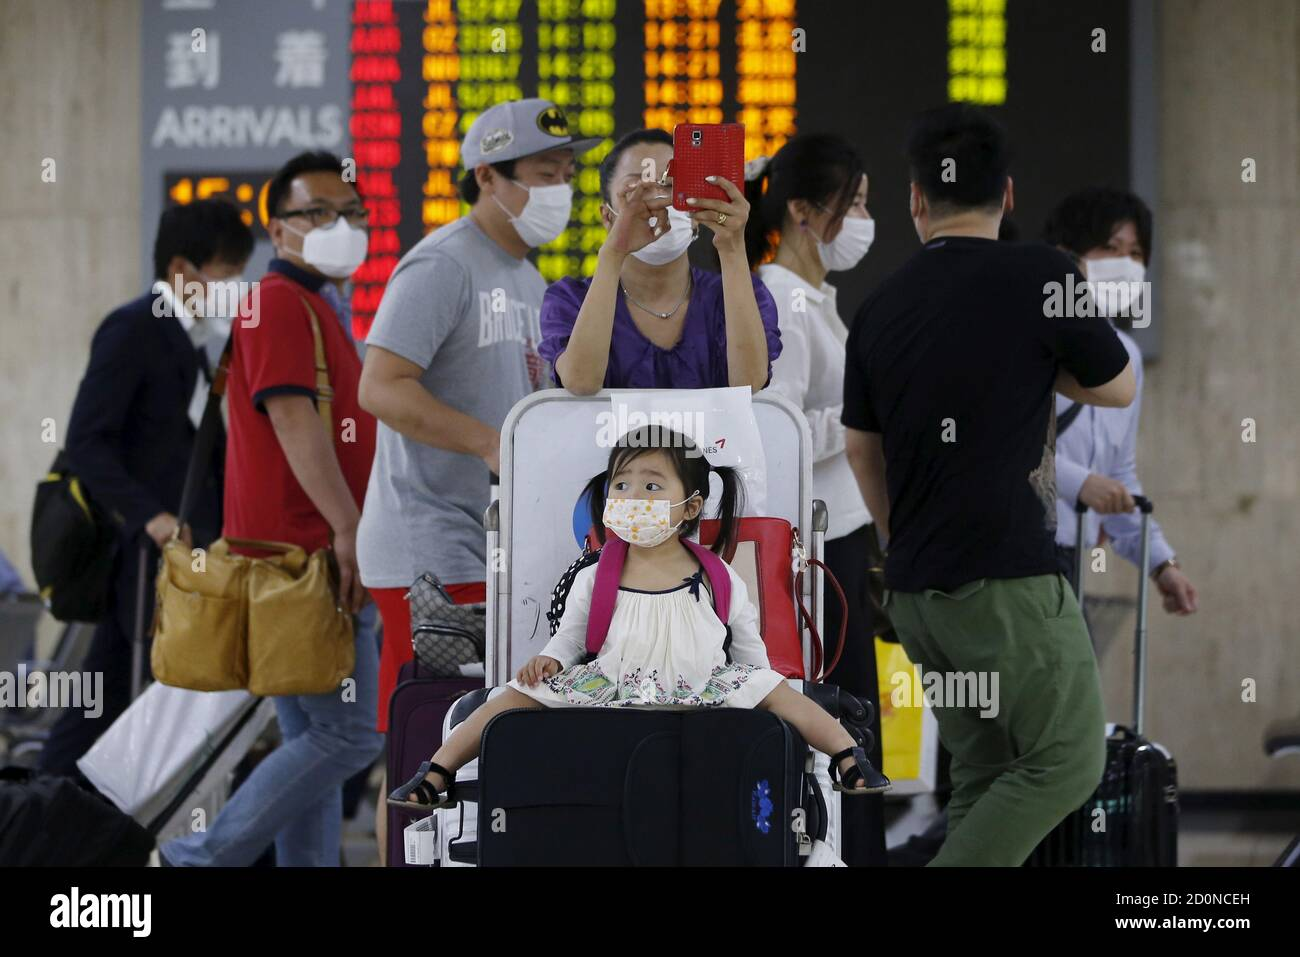 A girl wearing a mask to prevent contracting Middle East Respiratory Syndrome (MERS) sits on a luggage as others walk past them at Gimpo International Airport in Seoul, South Korea, June 17, 2015. South Korea on Wednesday reported eight new cases of MERS, whilst another person infected with the virus died, health officials said, bringing to 20 the number of fatalities in the outbreak that began last month.   REUTERS/Kim Hong-Ji Stock Photo